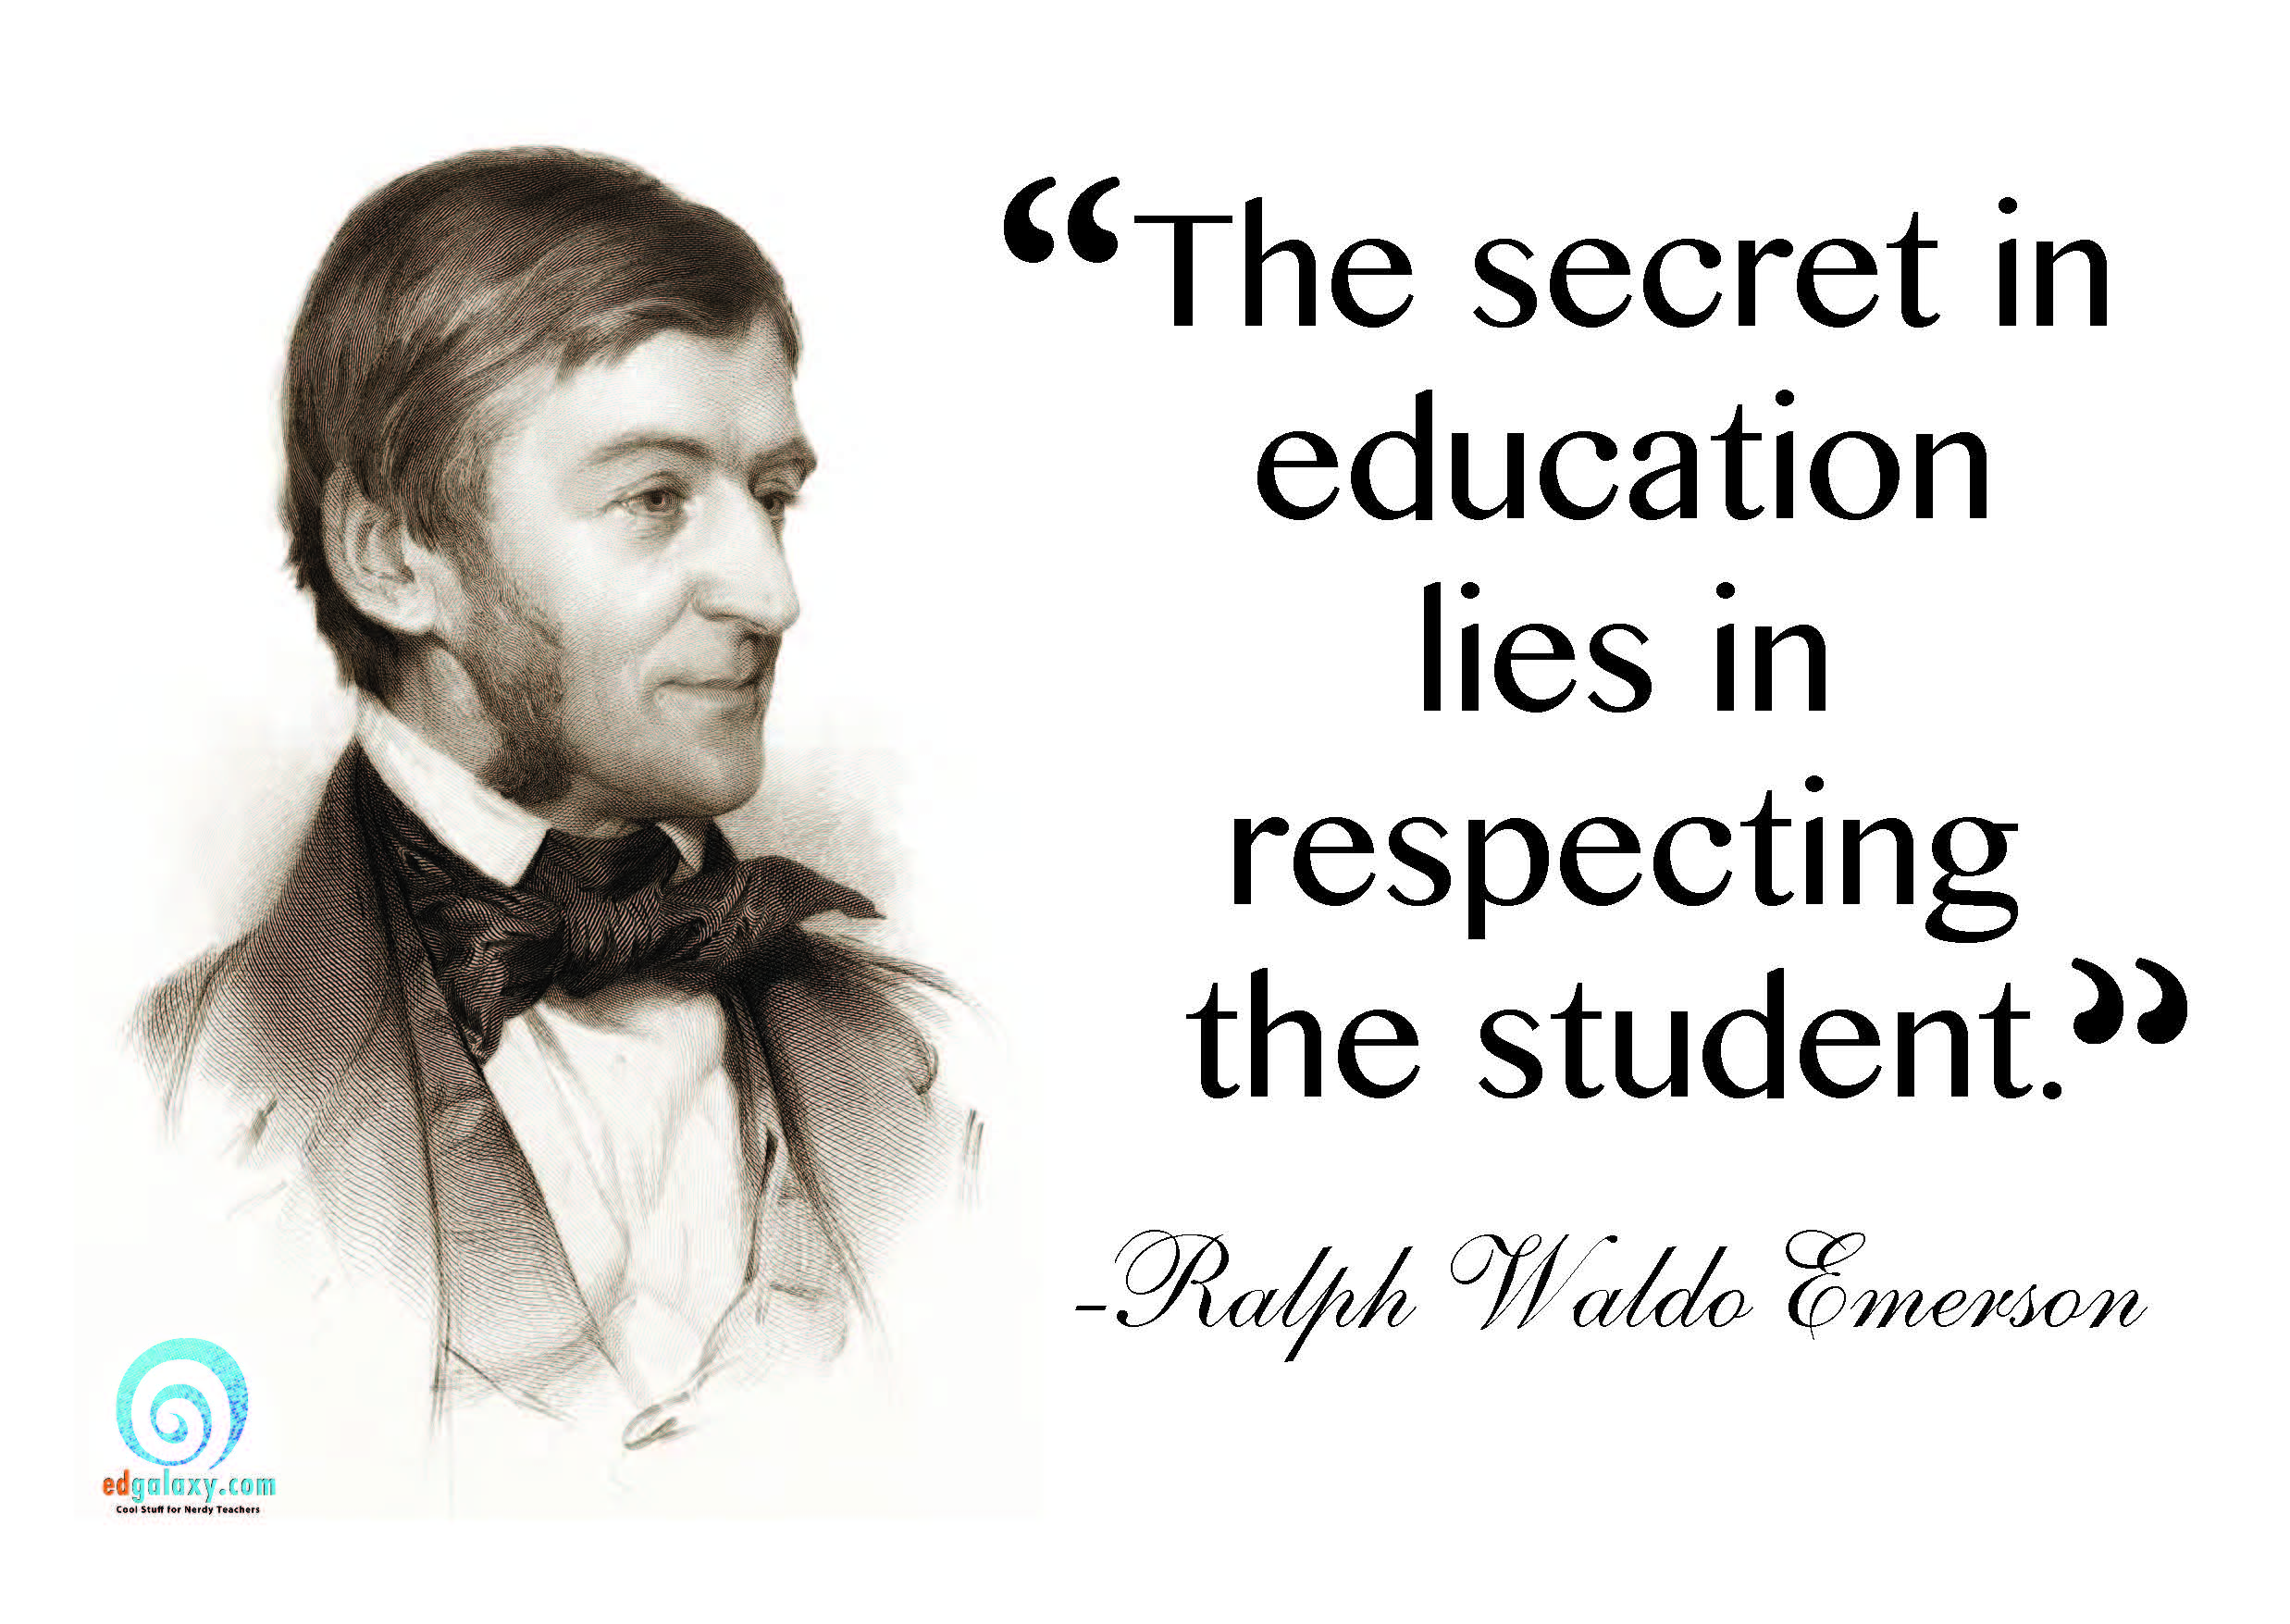 Education Quotes Famous Quotes For Teachers And Students Edgalaxy Teaching Ideas And Resources